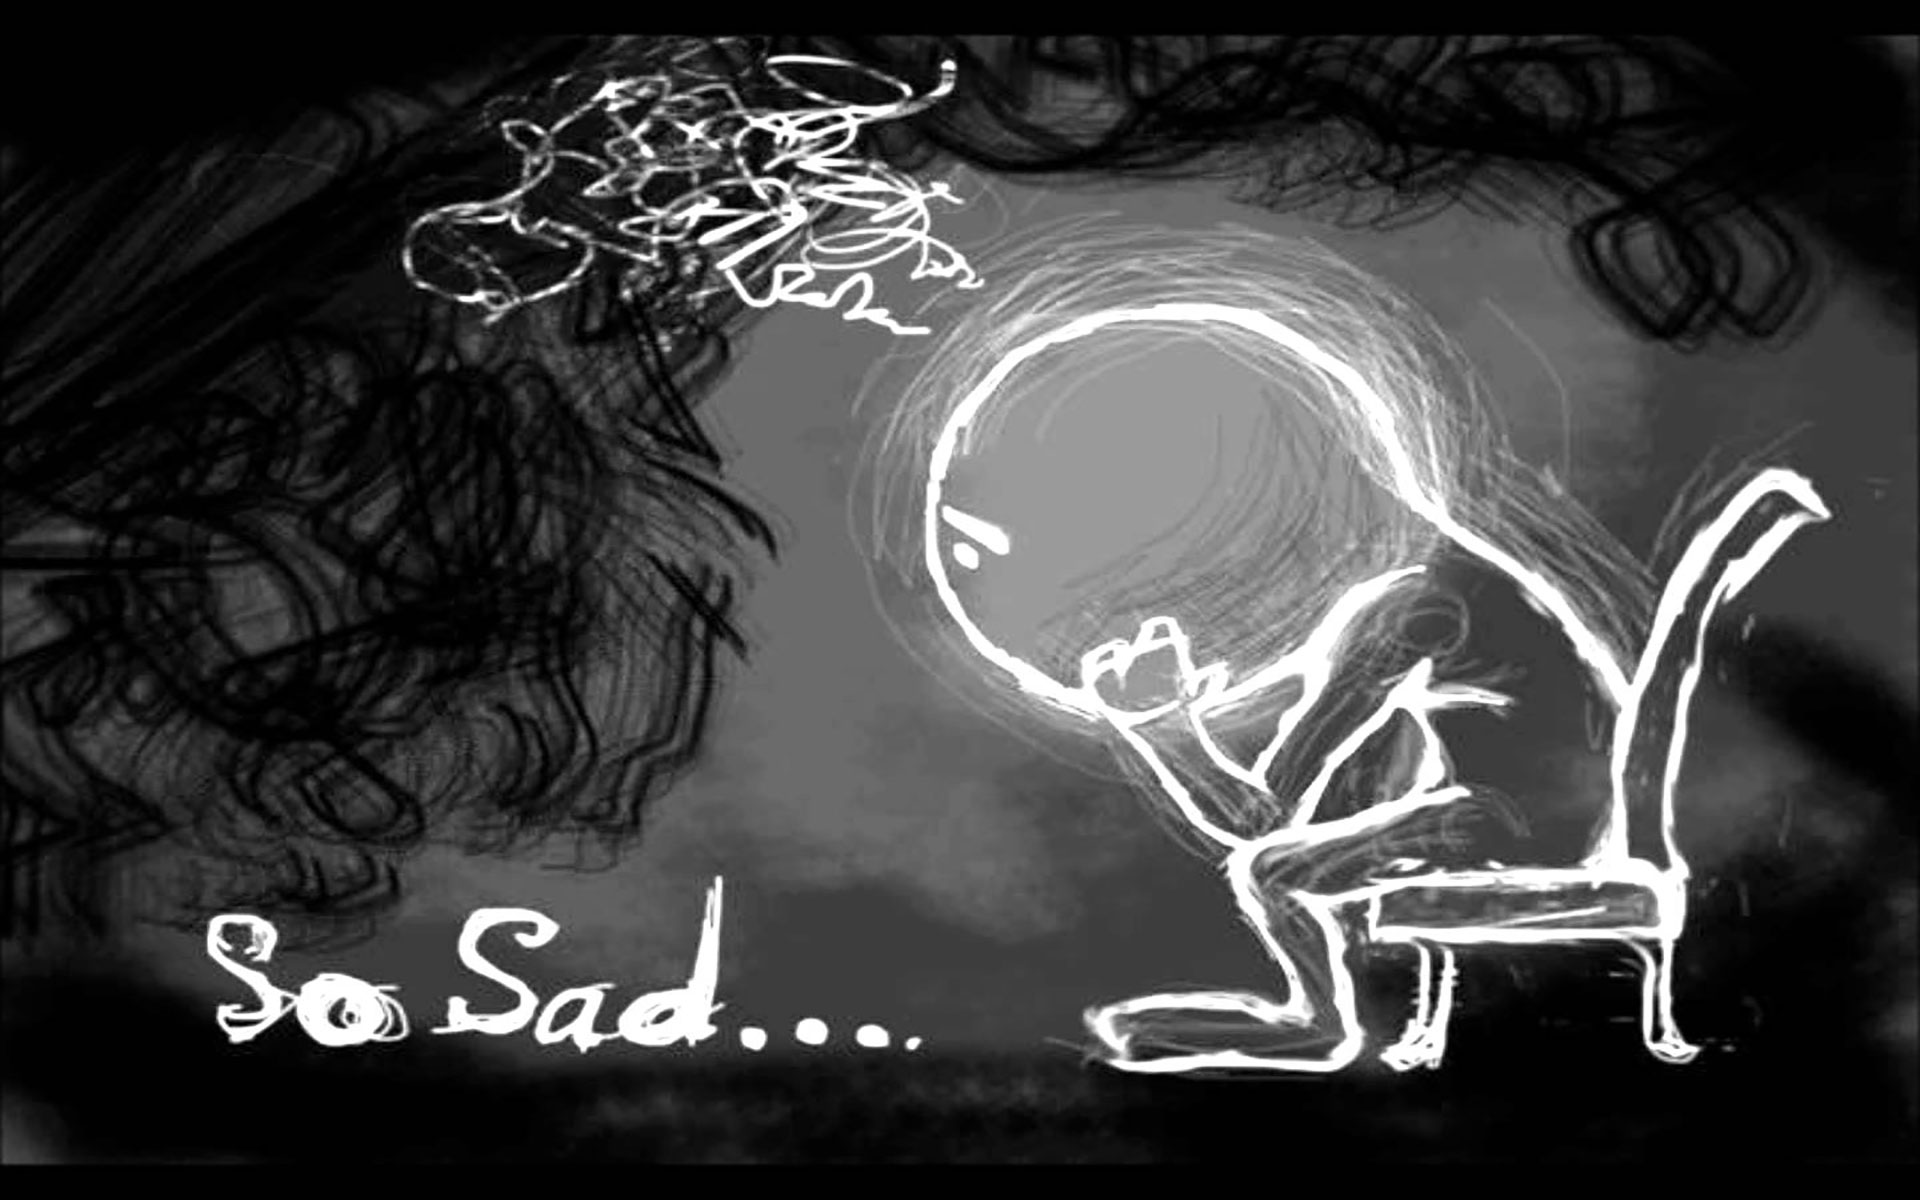 Sad Love Animation Wallpaper : Free Download Sad Wallpapers HD Depression Wallpaper